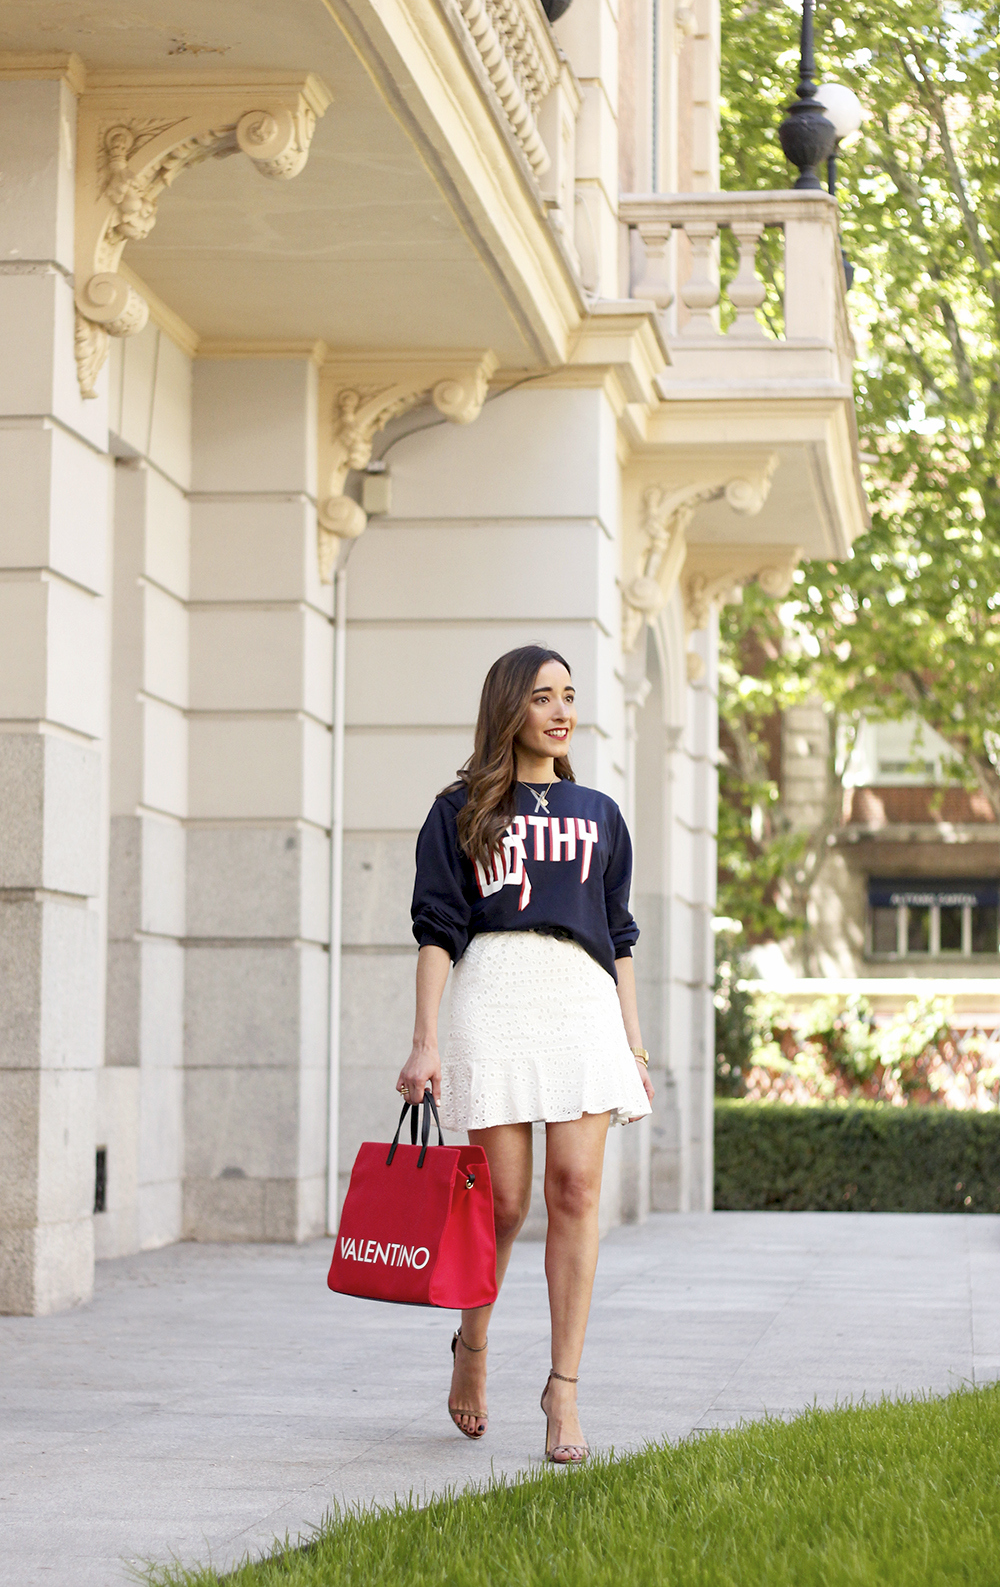 white skirt sweatshirt high heels valentinohandbags street style spring outfit1